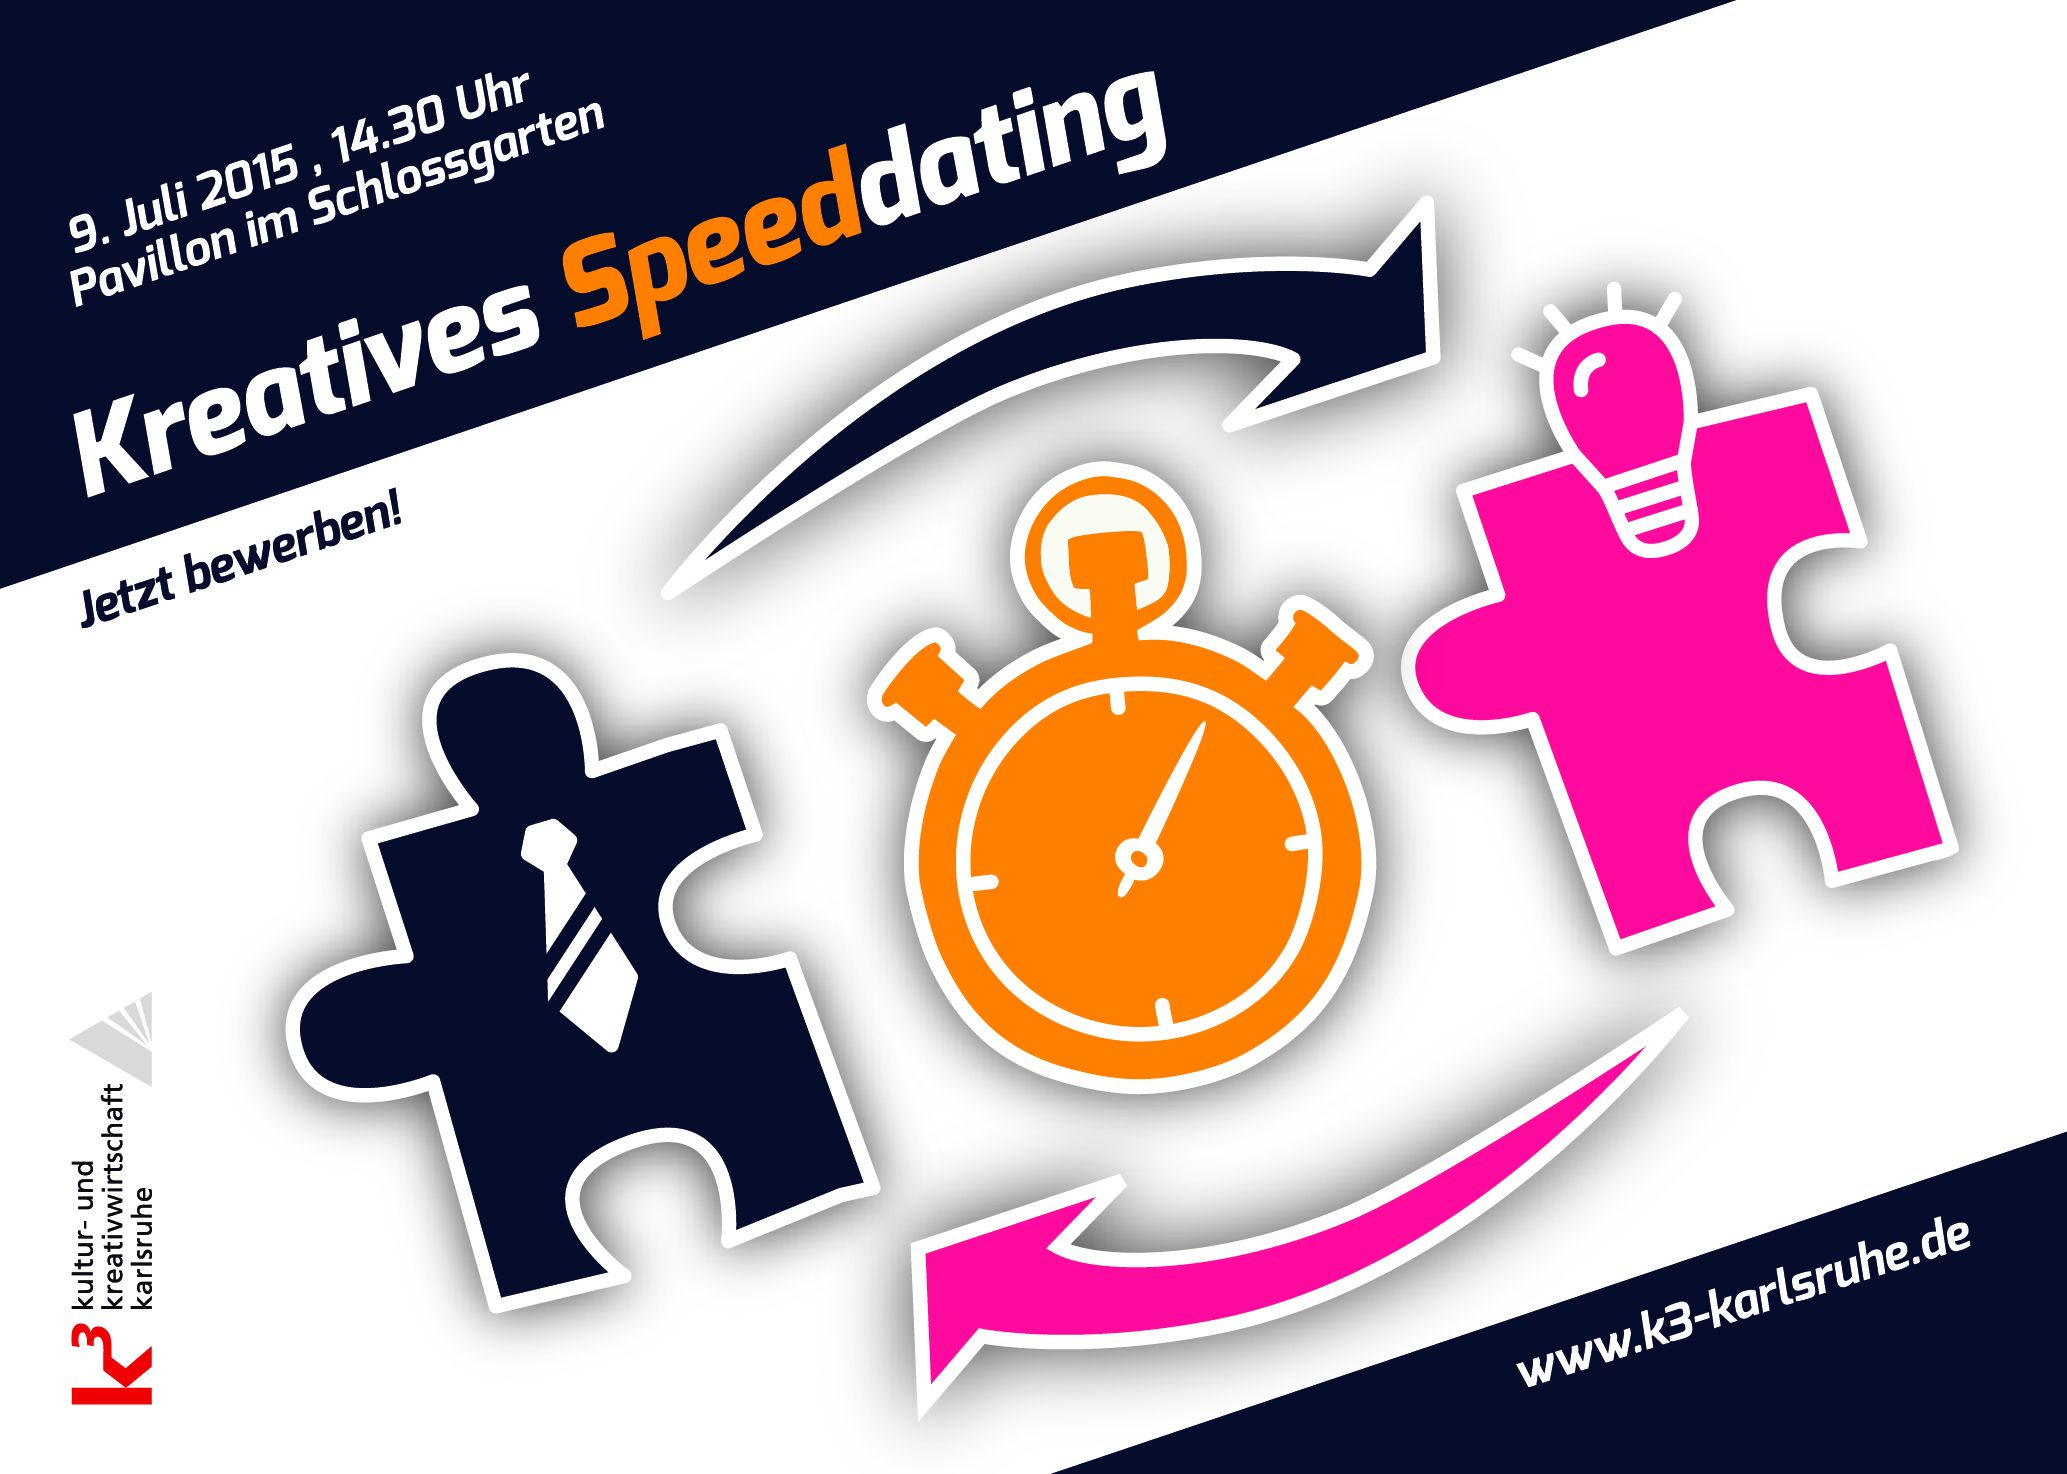 Ihk karlsruhe speed dating 2015